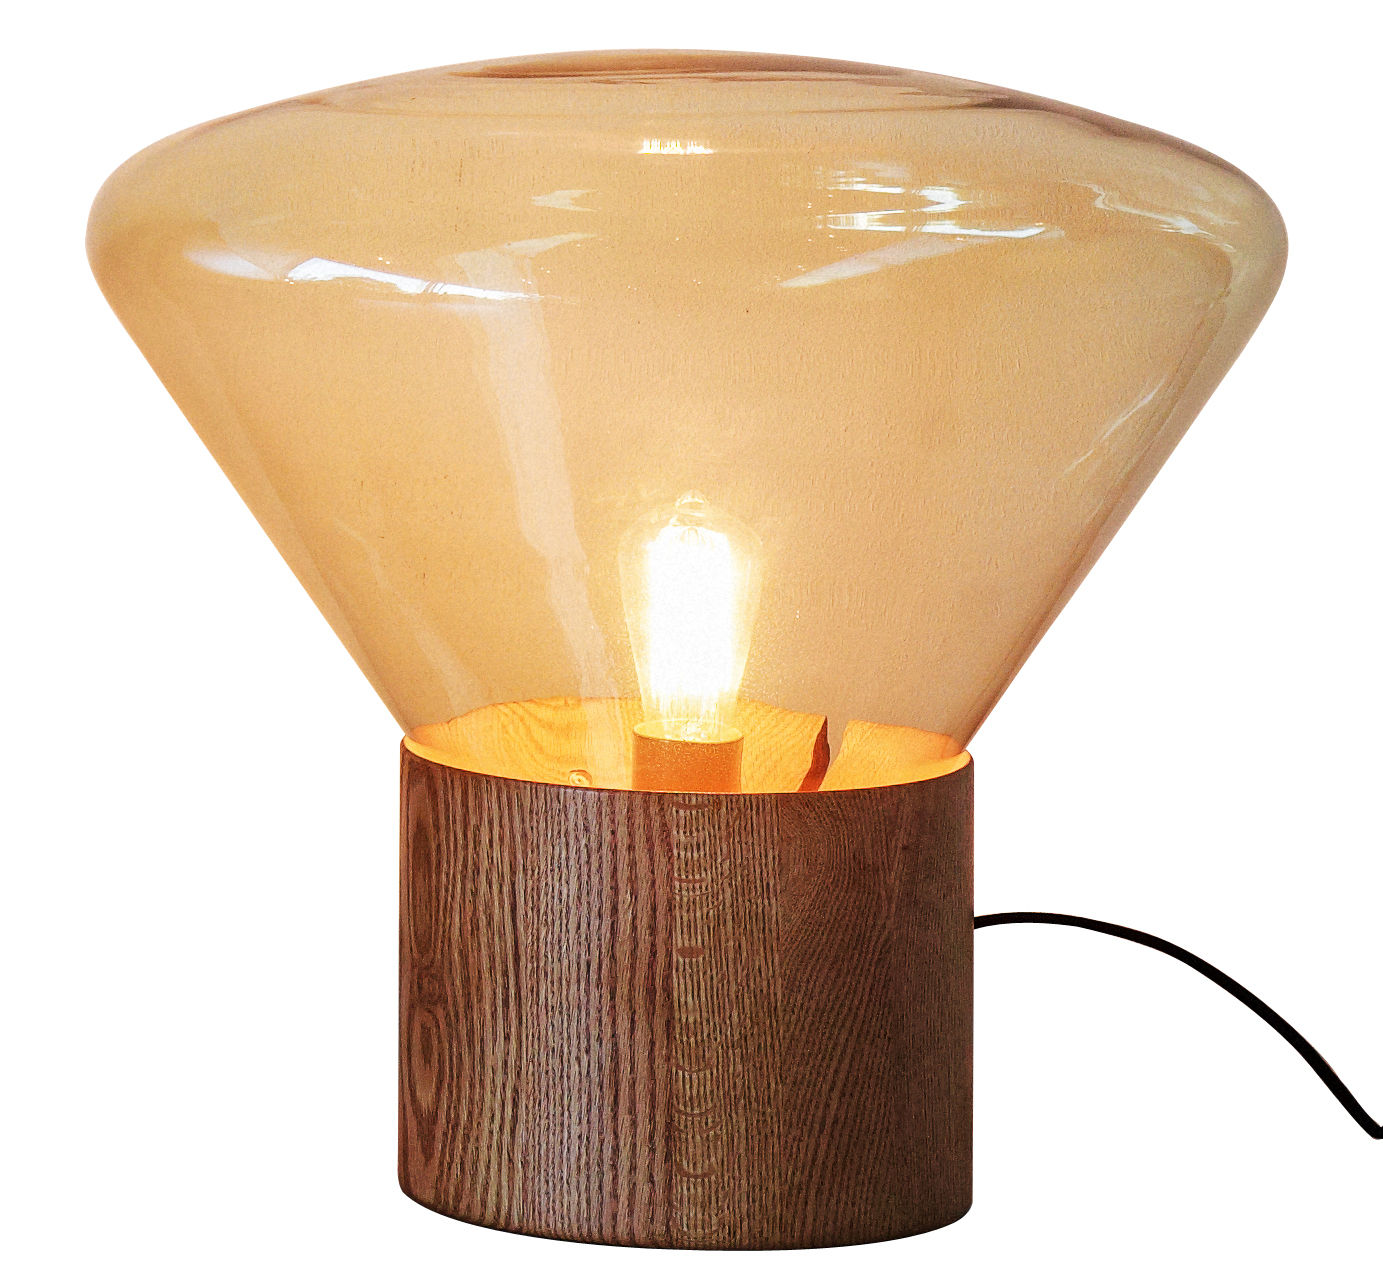 Lighting - Table Lamps - Muffin Large Lamp by Brokis - Amber glass - Blown glass, Oak